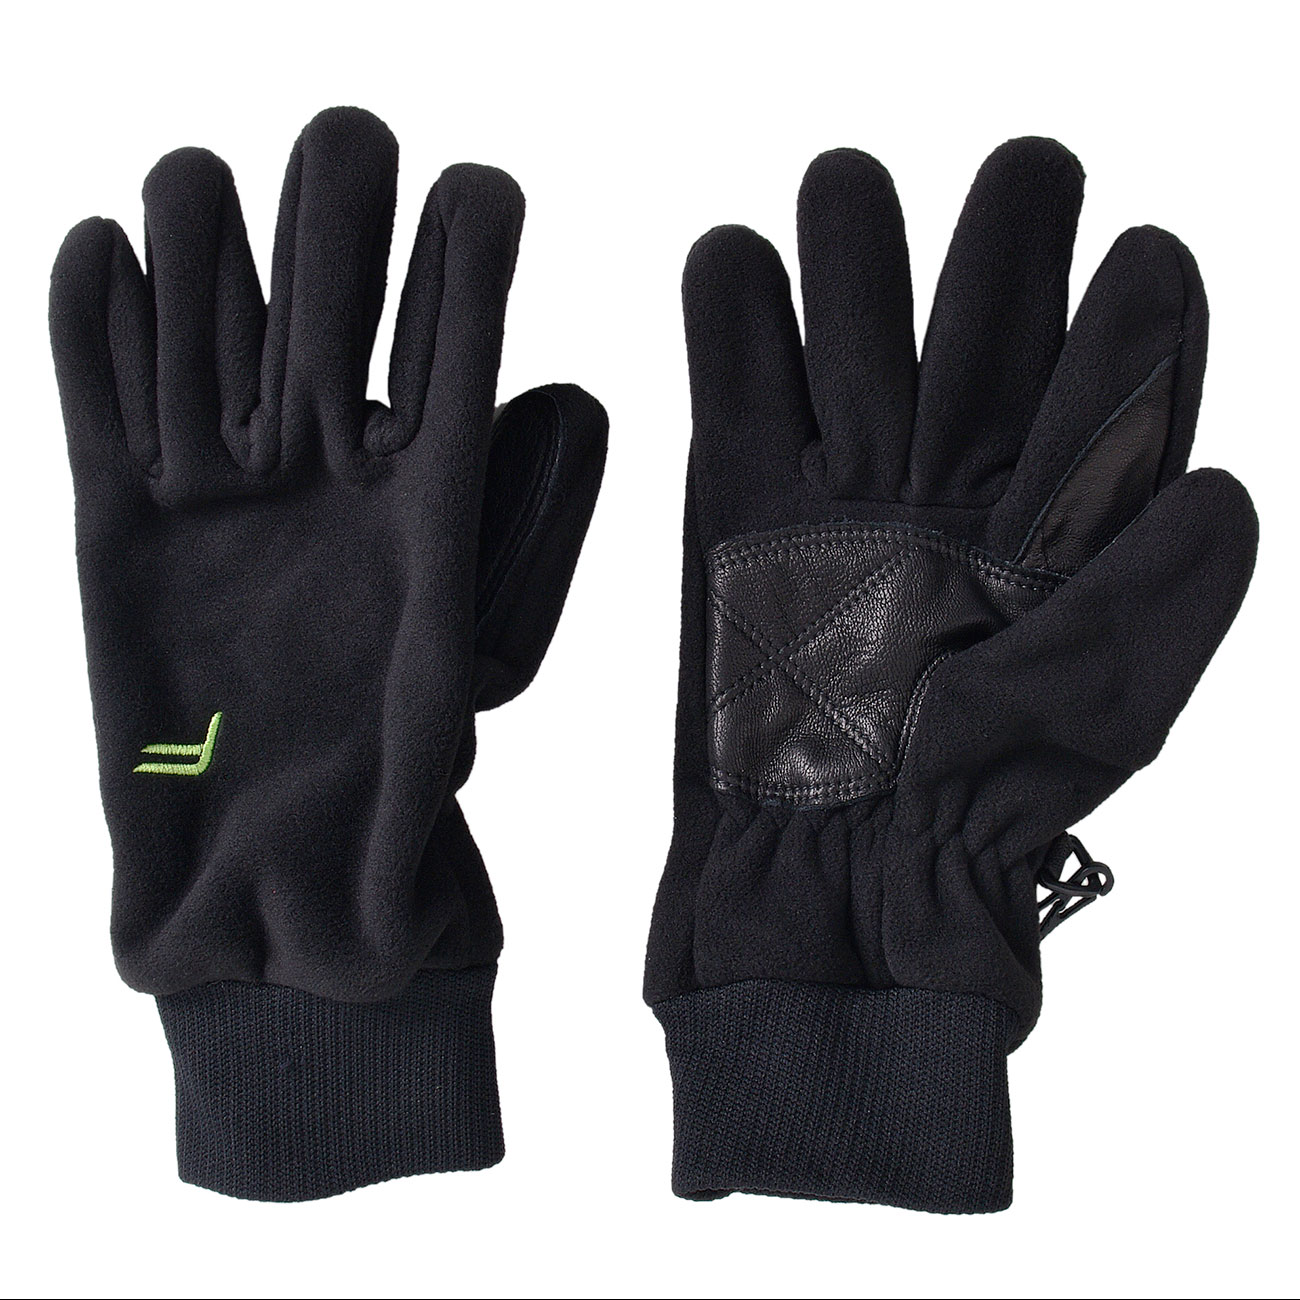 F-Lite Fleece Handschuh Waterproof schwarz 1